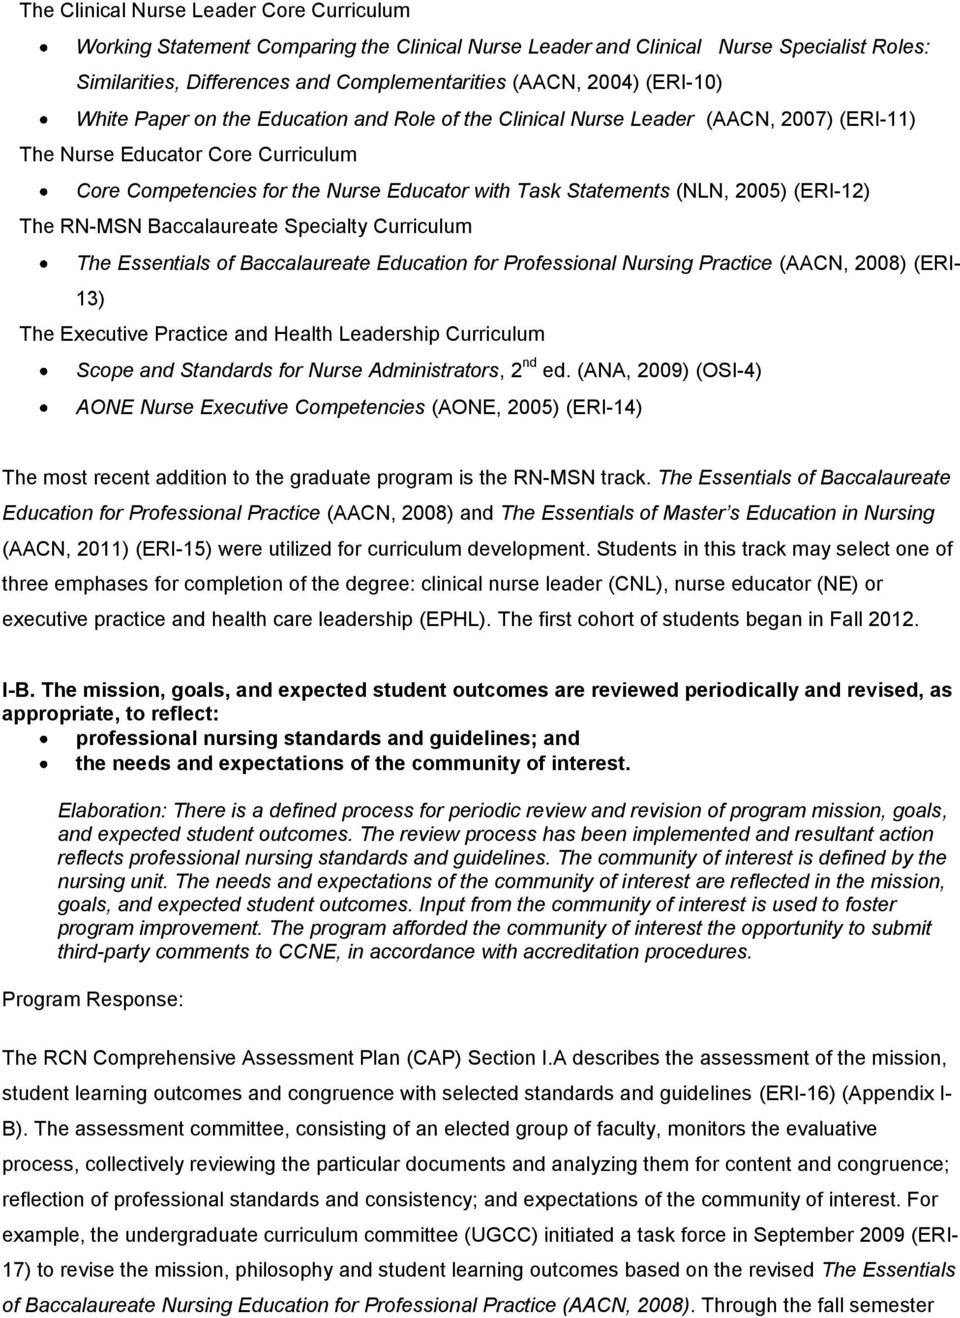 (NLN, 2005) (ERI-12) The RN-MSN Baccalaureate Specialty Curriculum The Essentials of Baccalaureate Education for Professional Nursing Practice (AACN, 2008) (ERI- 13) The Executive Practice and Health